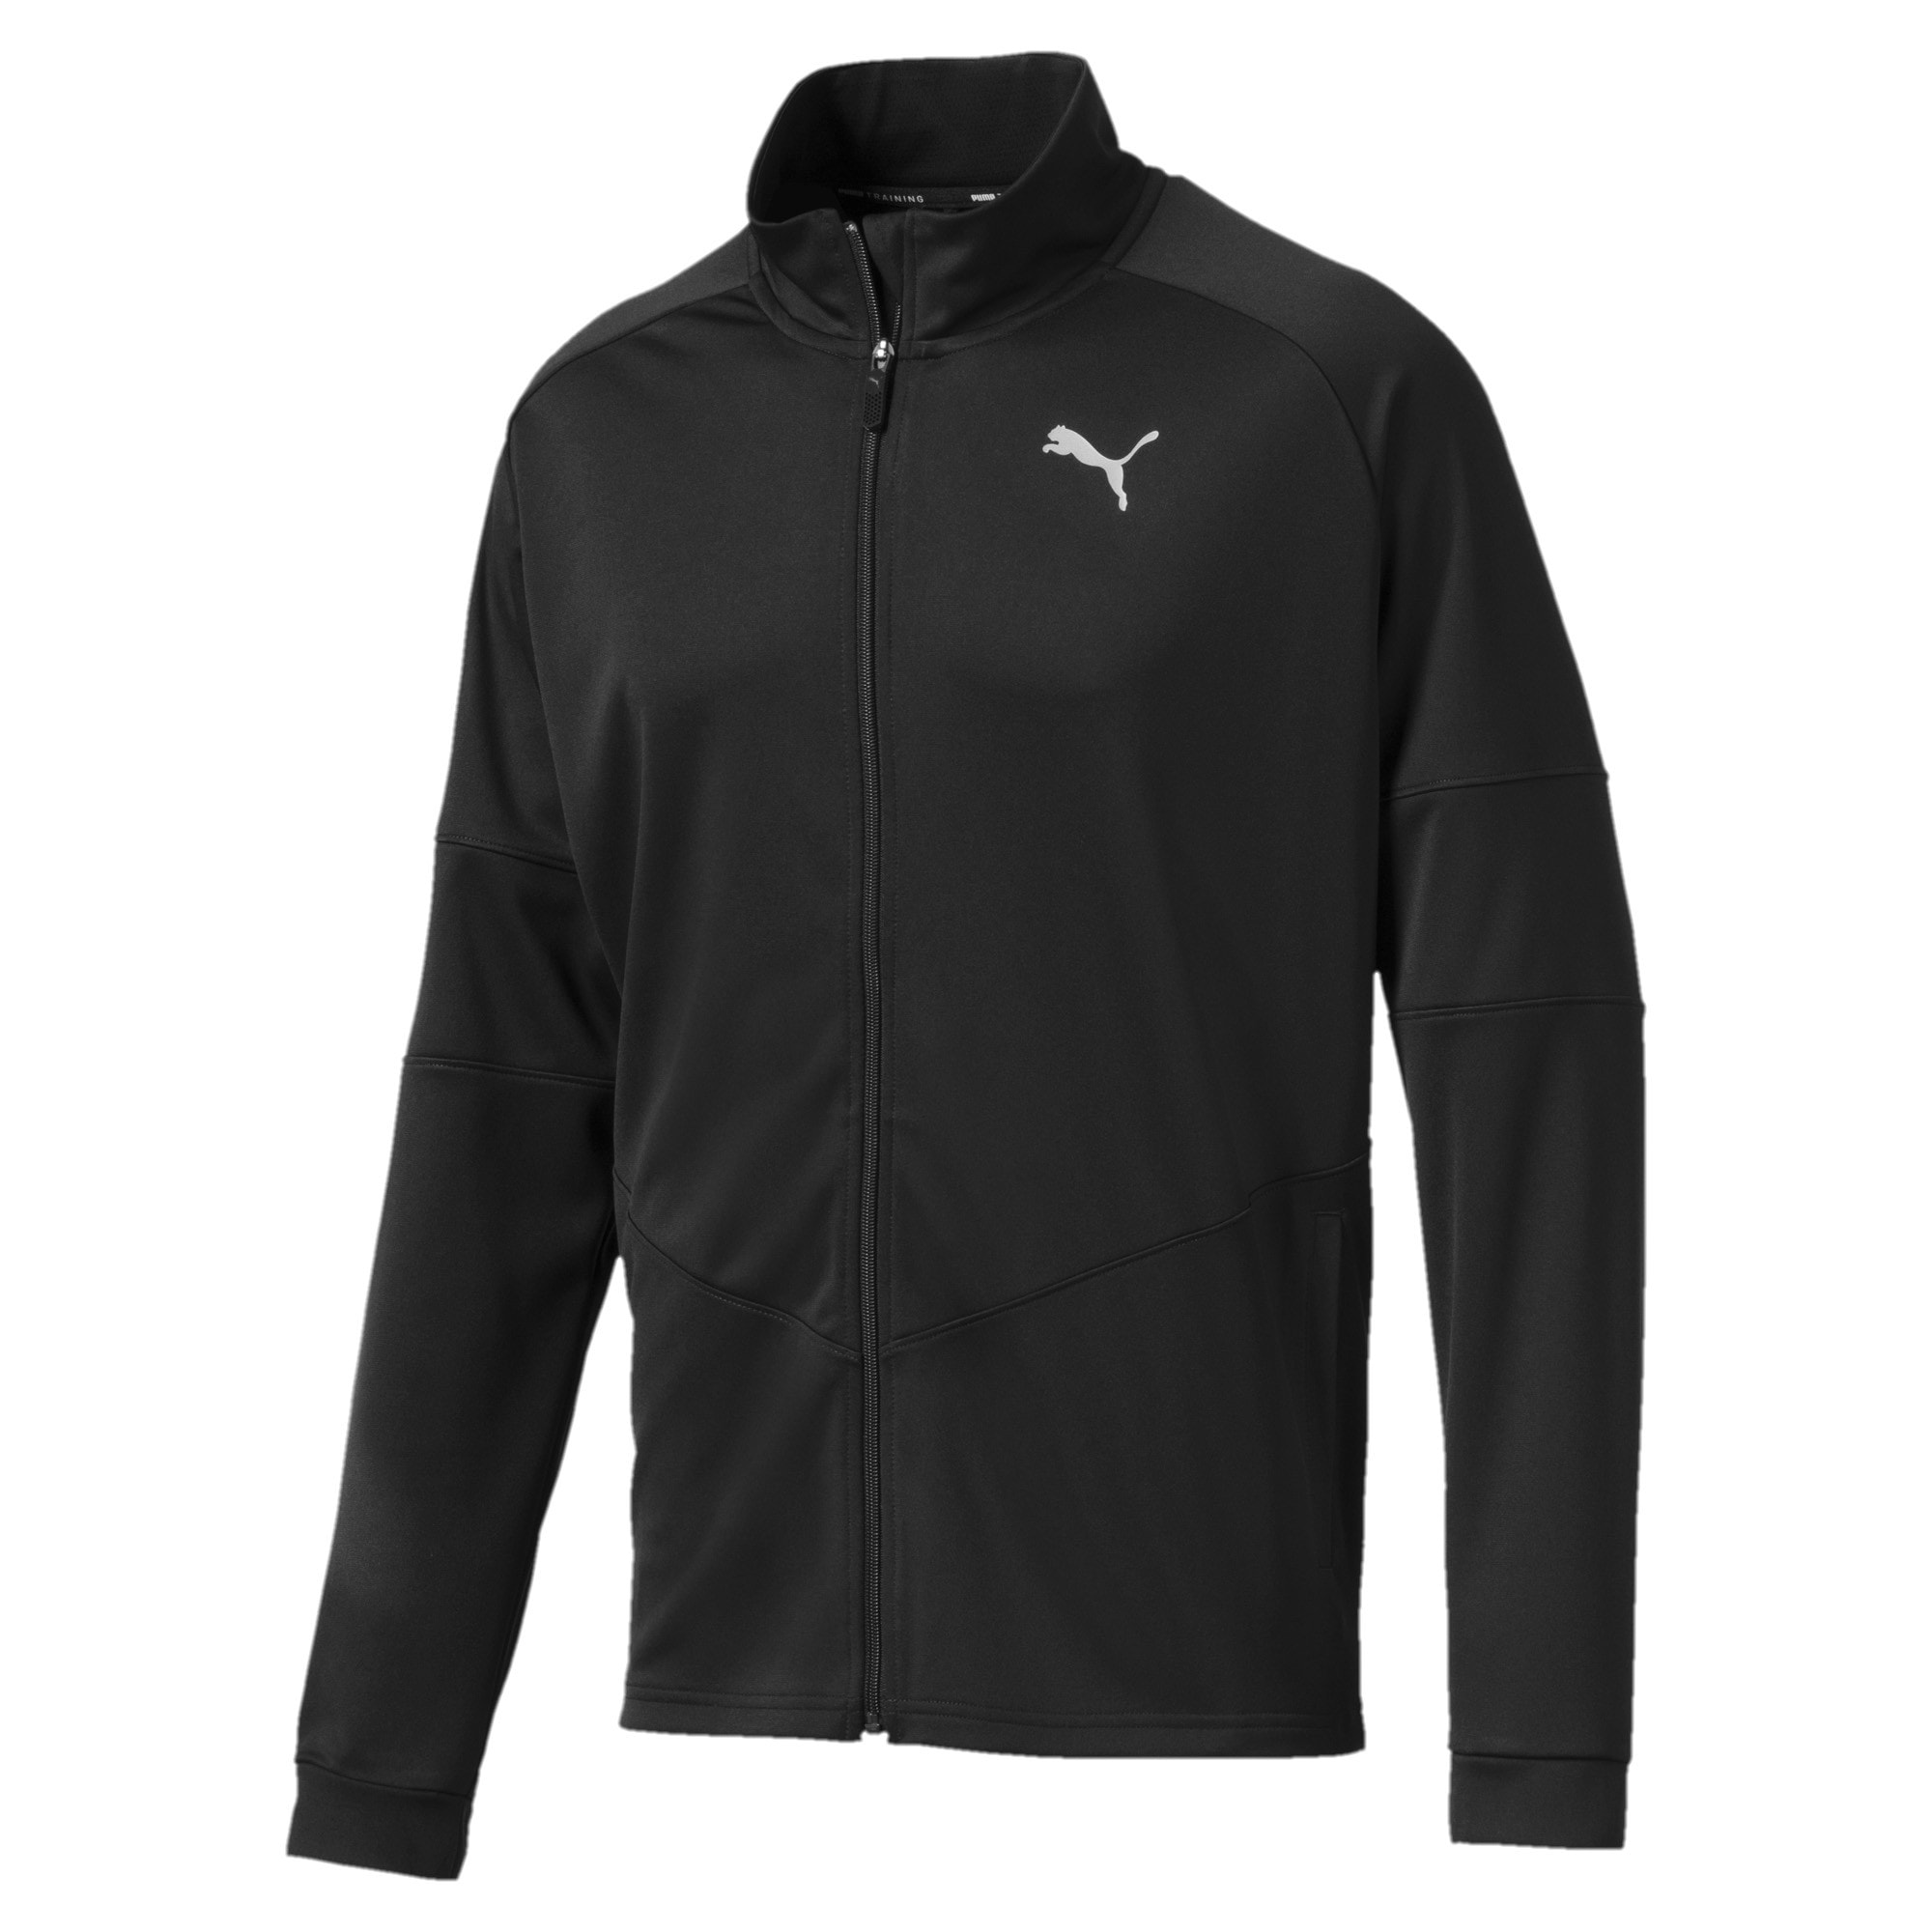 Thumbnail 1 of PUMA Blaster Men's Jacket, Puma Black, medium